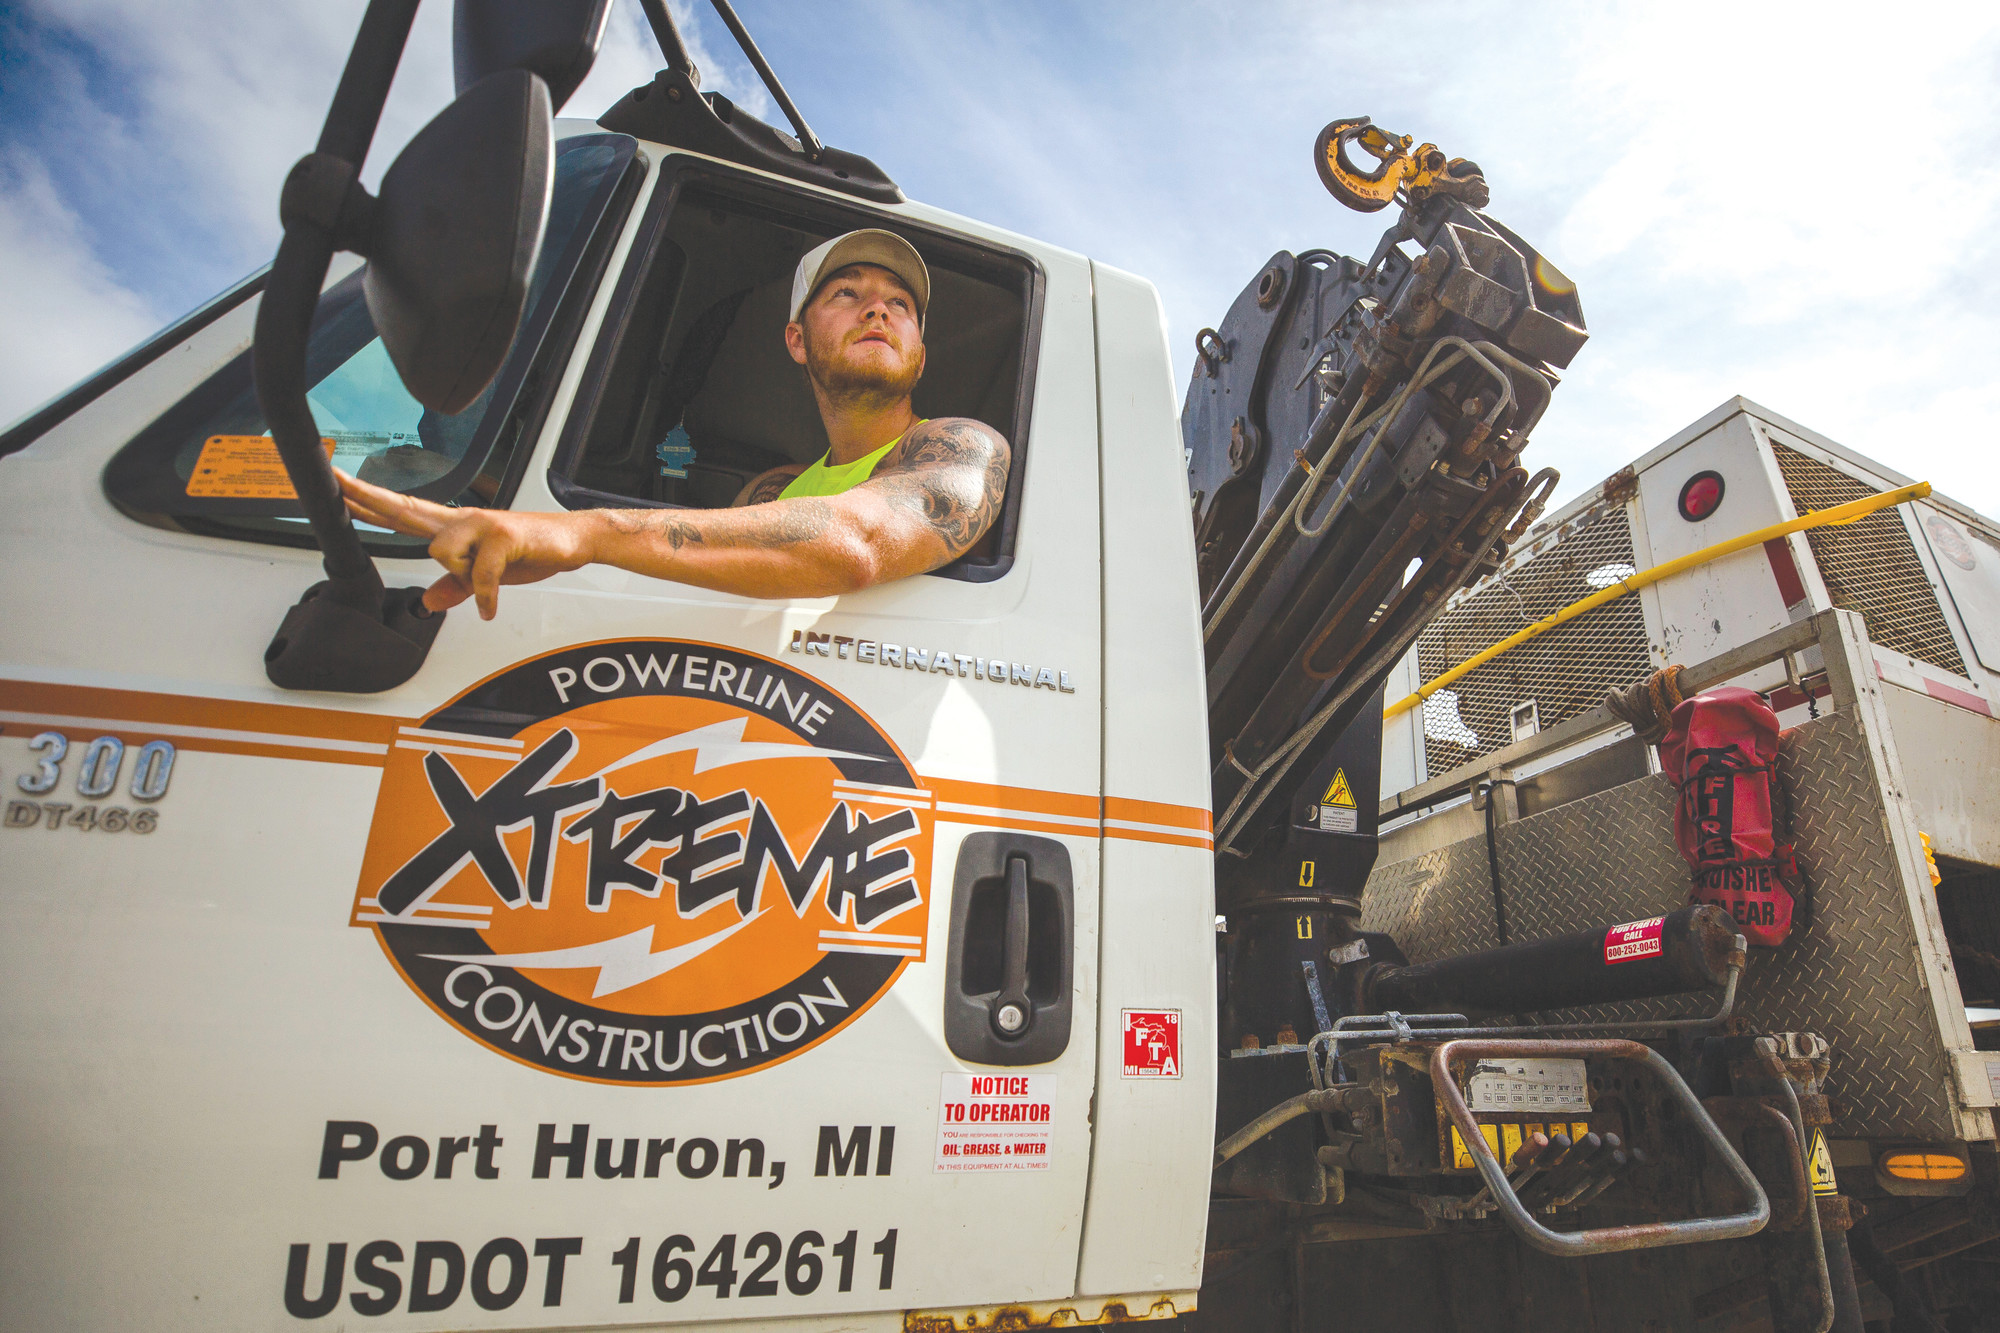 Jake Bieke, an employee with Xtreme Powerline and Construction, speaks with a coworker out of frame. Xtreme Powerline and Construction is out of Port Huron, Michigan, but also has crews in Sumter from Florida, as well.